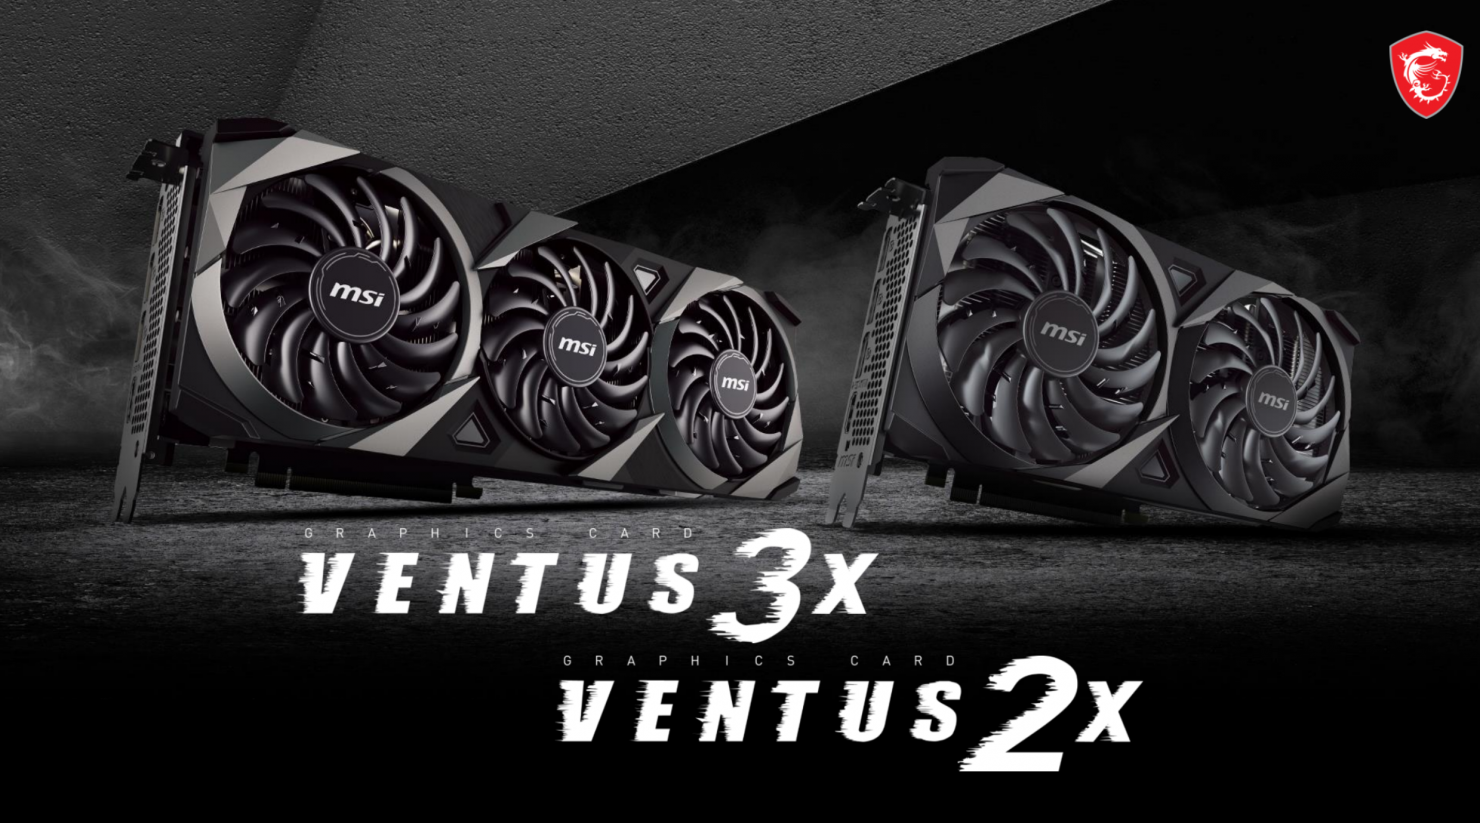 nvidia-geforce-rtx-3080-ti-12-gb-graphics-card-in-msi's-ventus-3x-oc-custom-flavor-spotted,-initial-shipments-commence